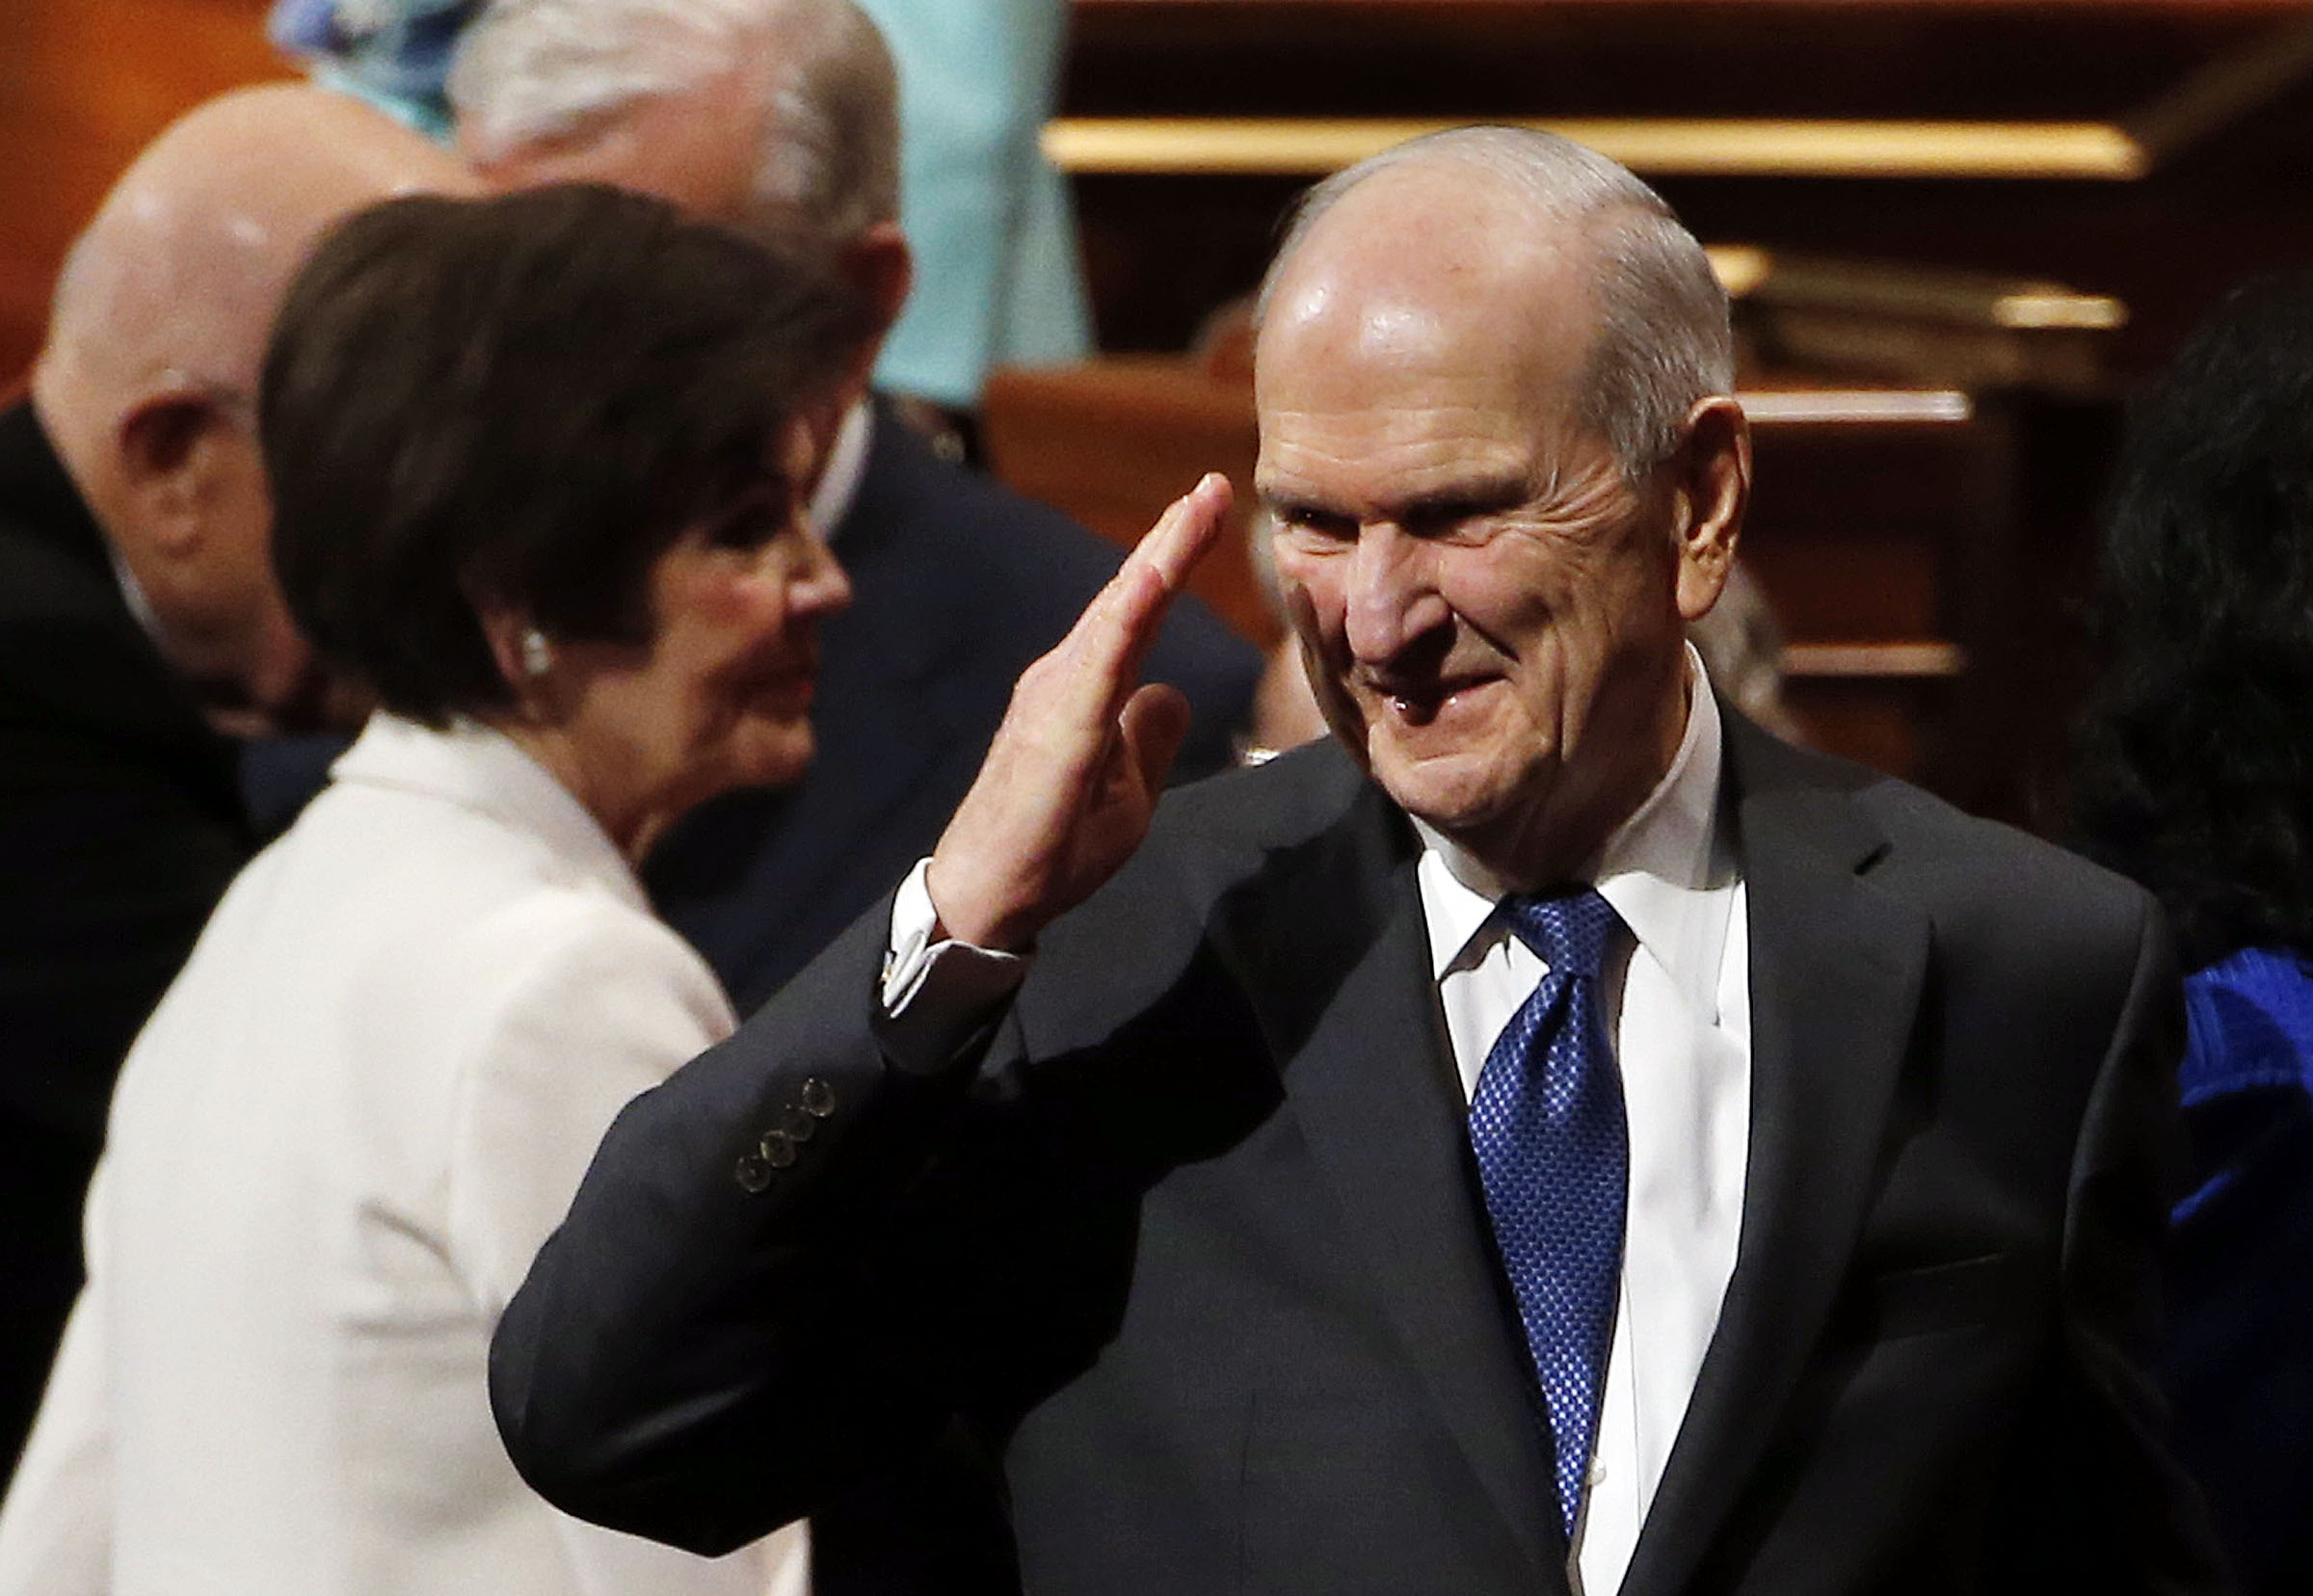 President Russell M. Nelson salutes conferencegoers following the Saturday morning session of the LDS Church's 188th Annual General Conference in Salt Lake City on Saturday, March 31, 2018.